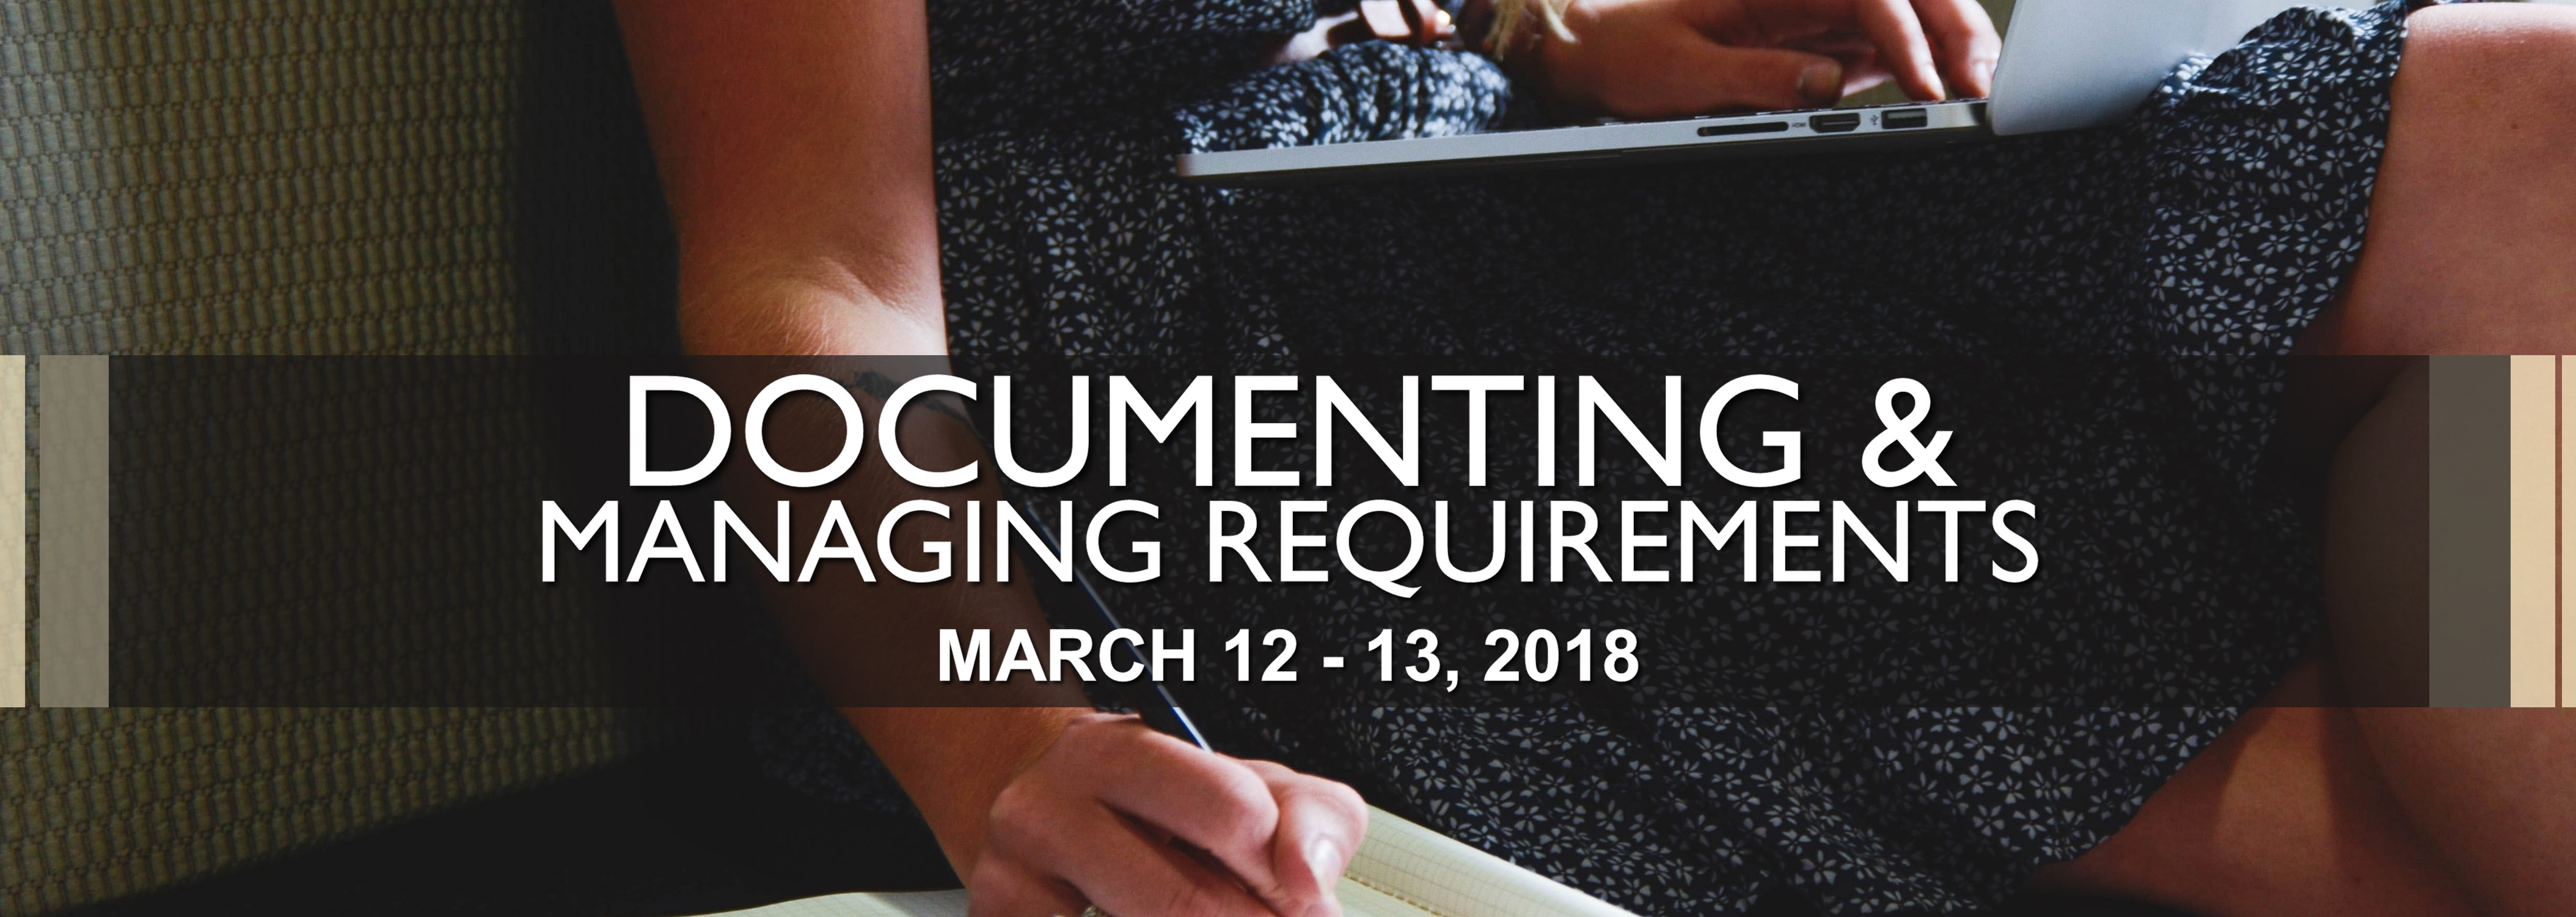 Documenting & Managing Requirements on March 12-13, 2018